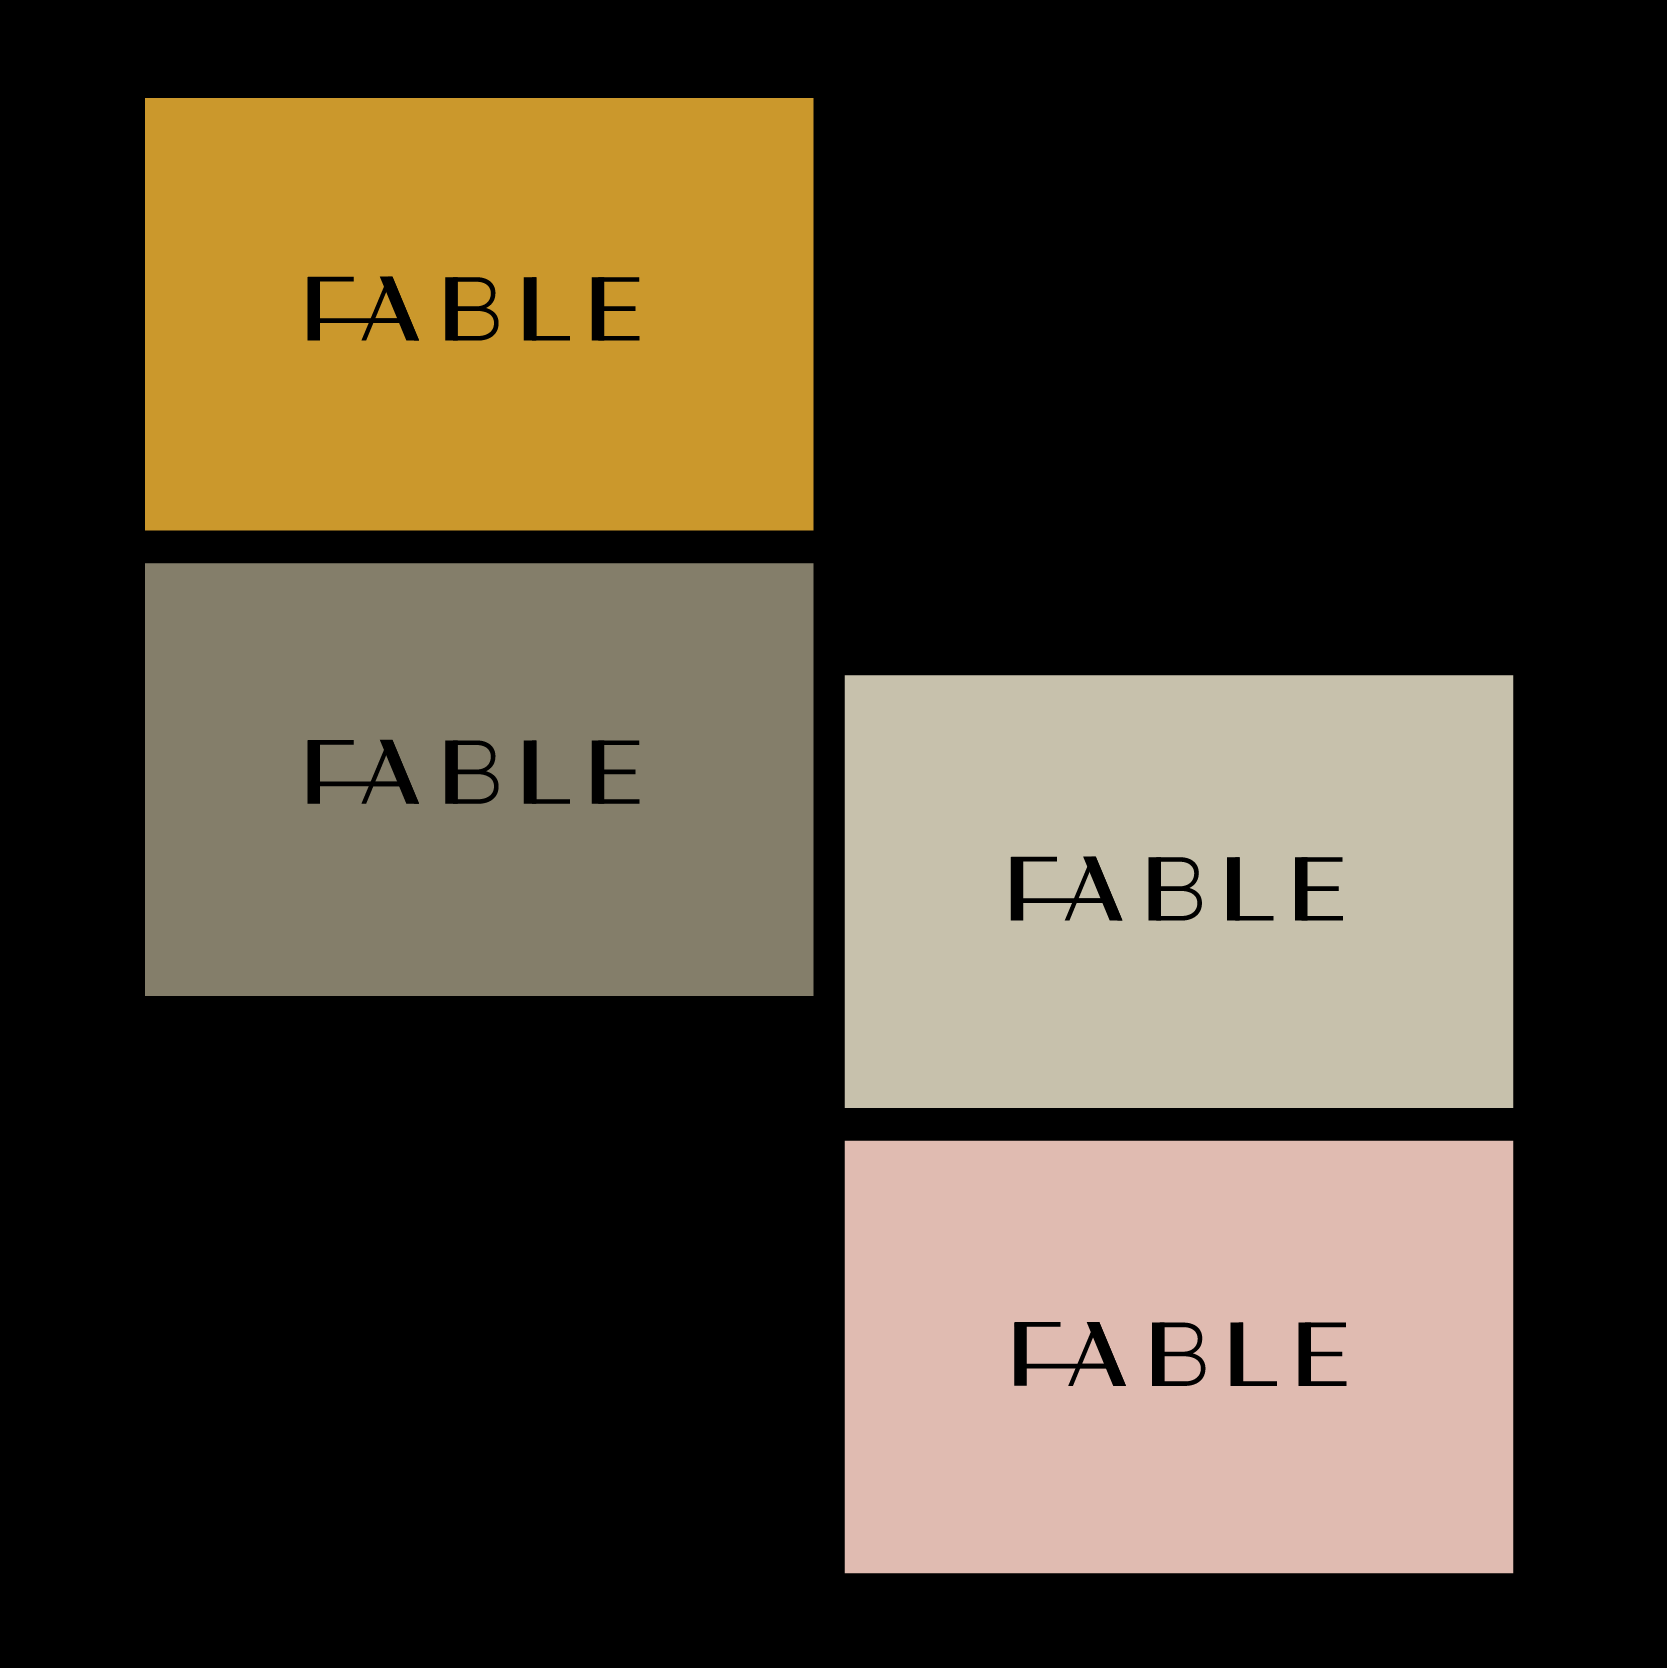 A Branding Concept for Fable Sustainable Furniture by Studio AMW